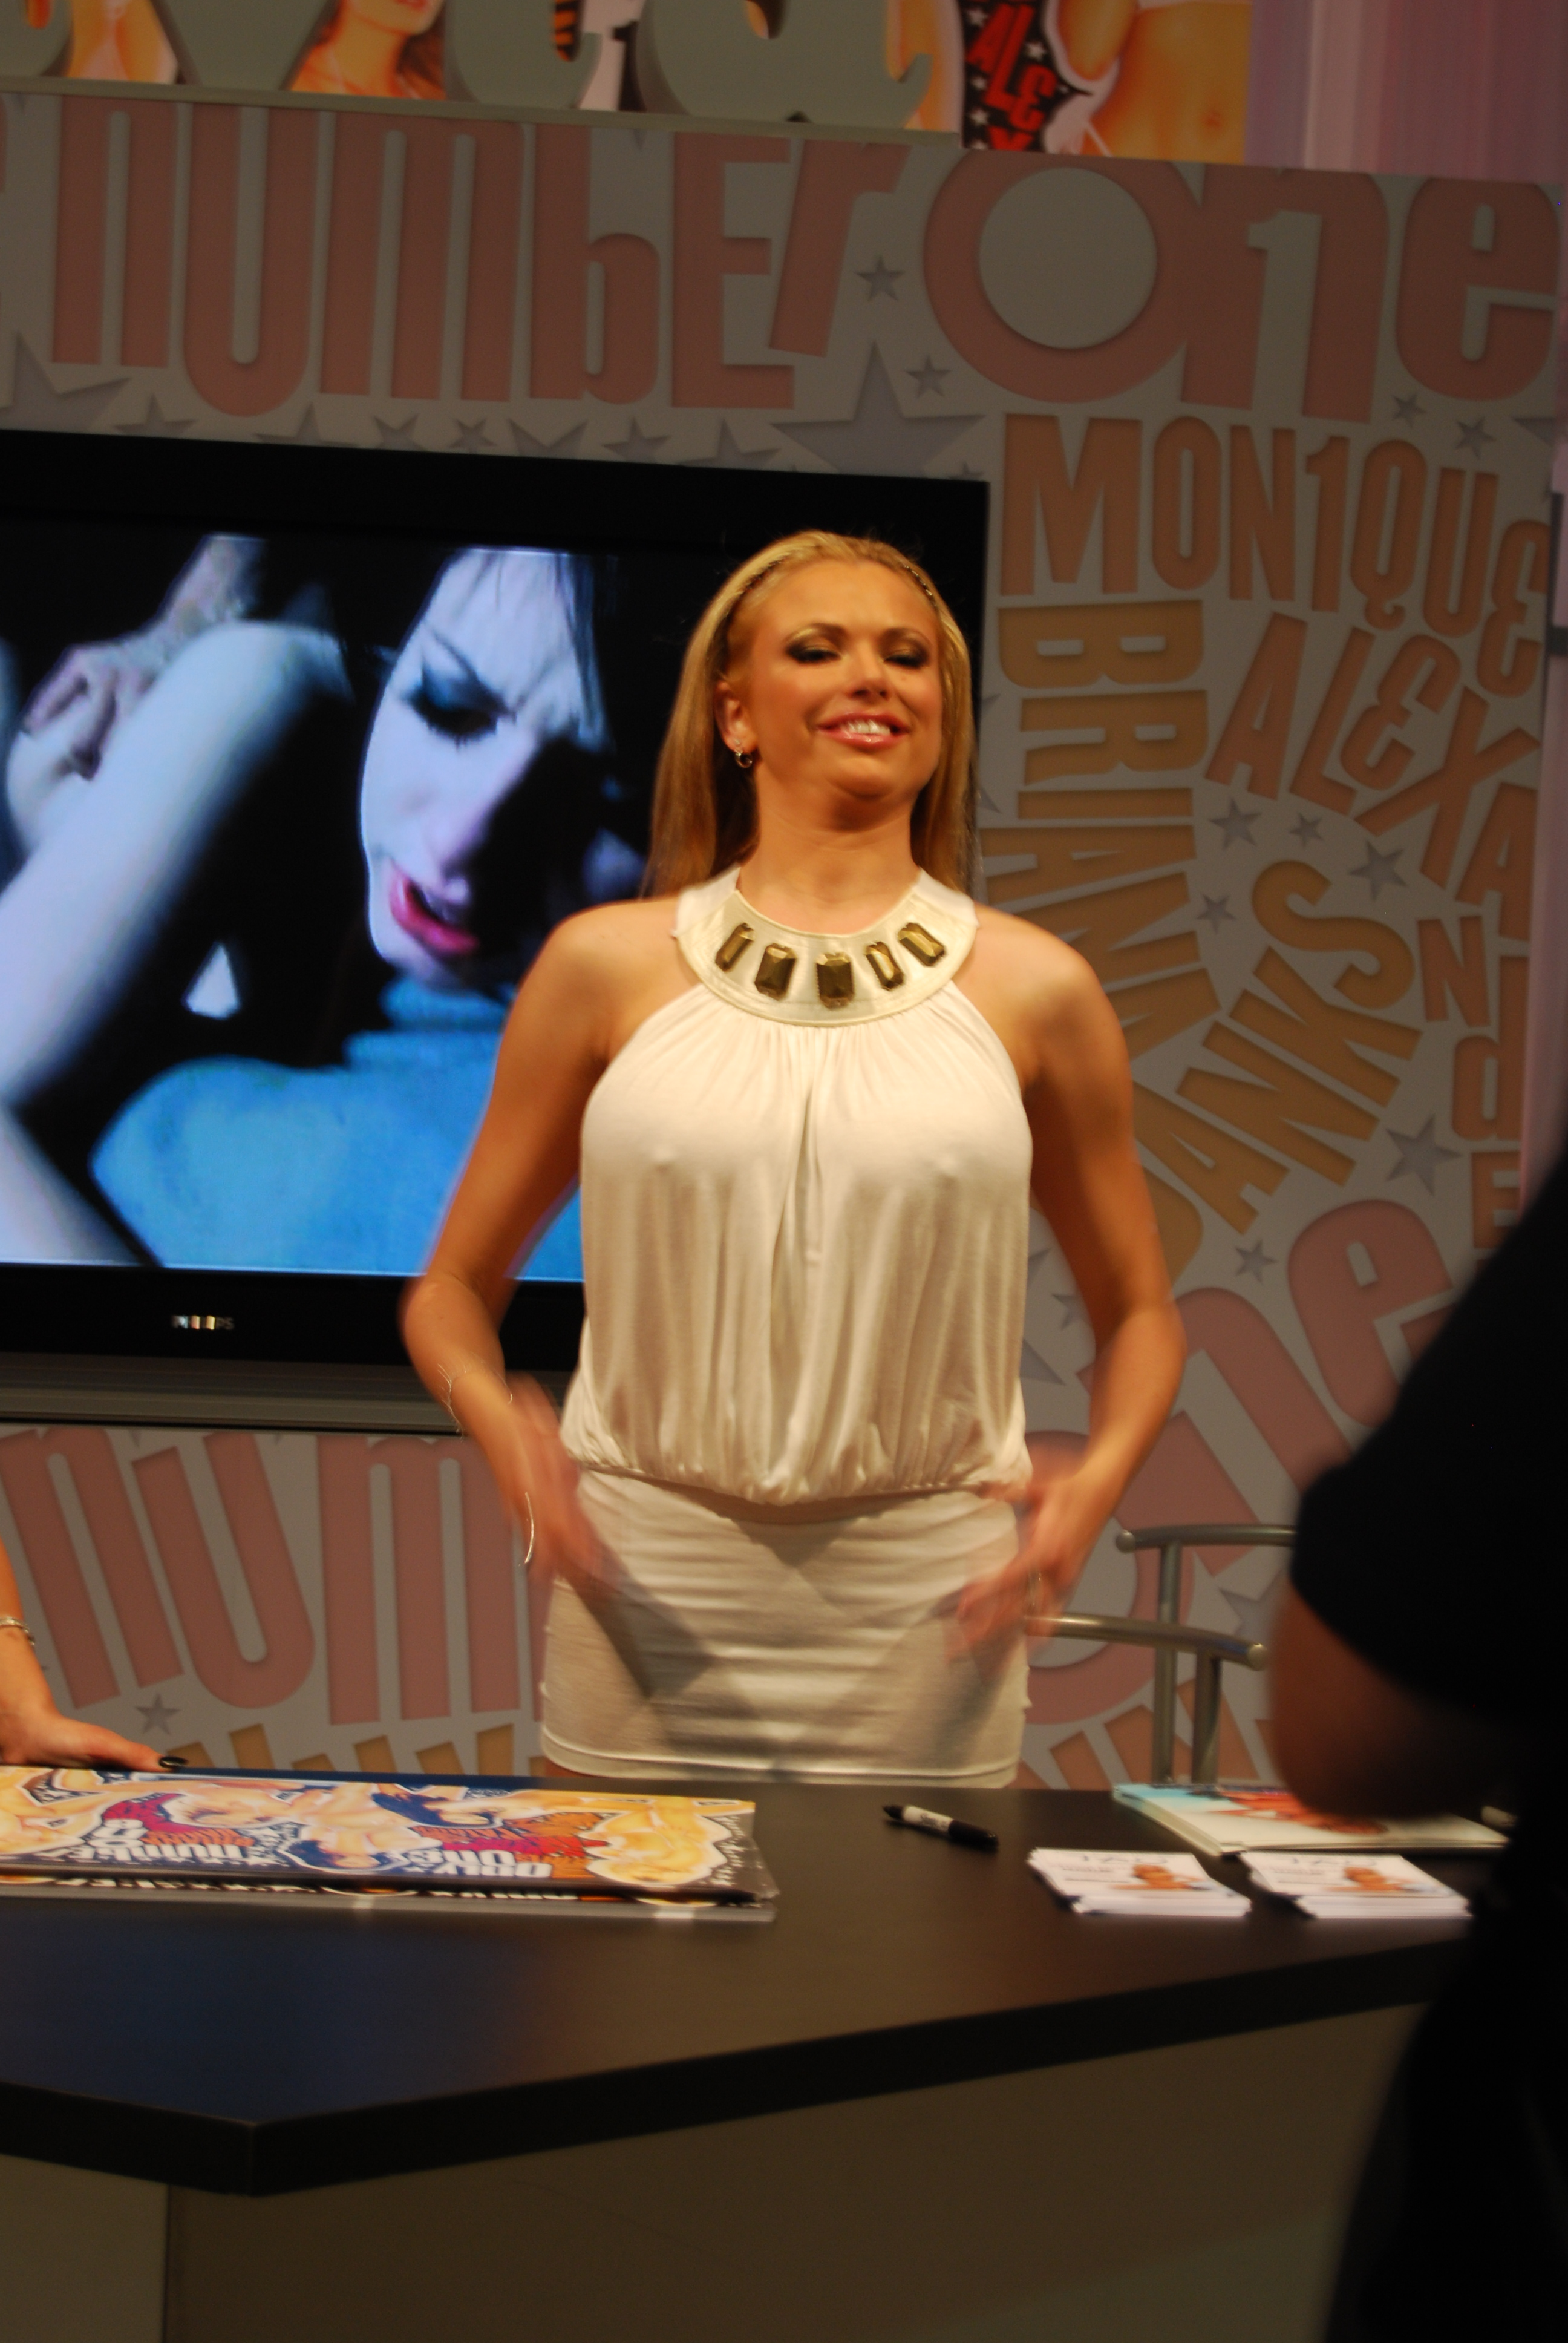 File Briana Banks At Avn Adult Entertainment Expo 2008 3 Jpg Wikimedia Commons 21 may 1978) is a german american pornographic actress and model. https commons wikimedia org wiki file briana banks at avn adult entertainment expo 2008 3 jpg